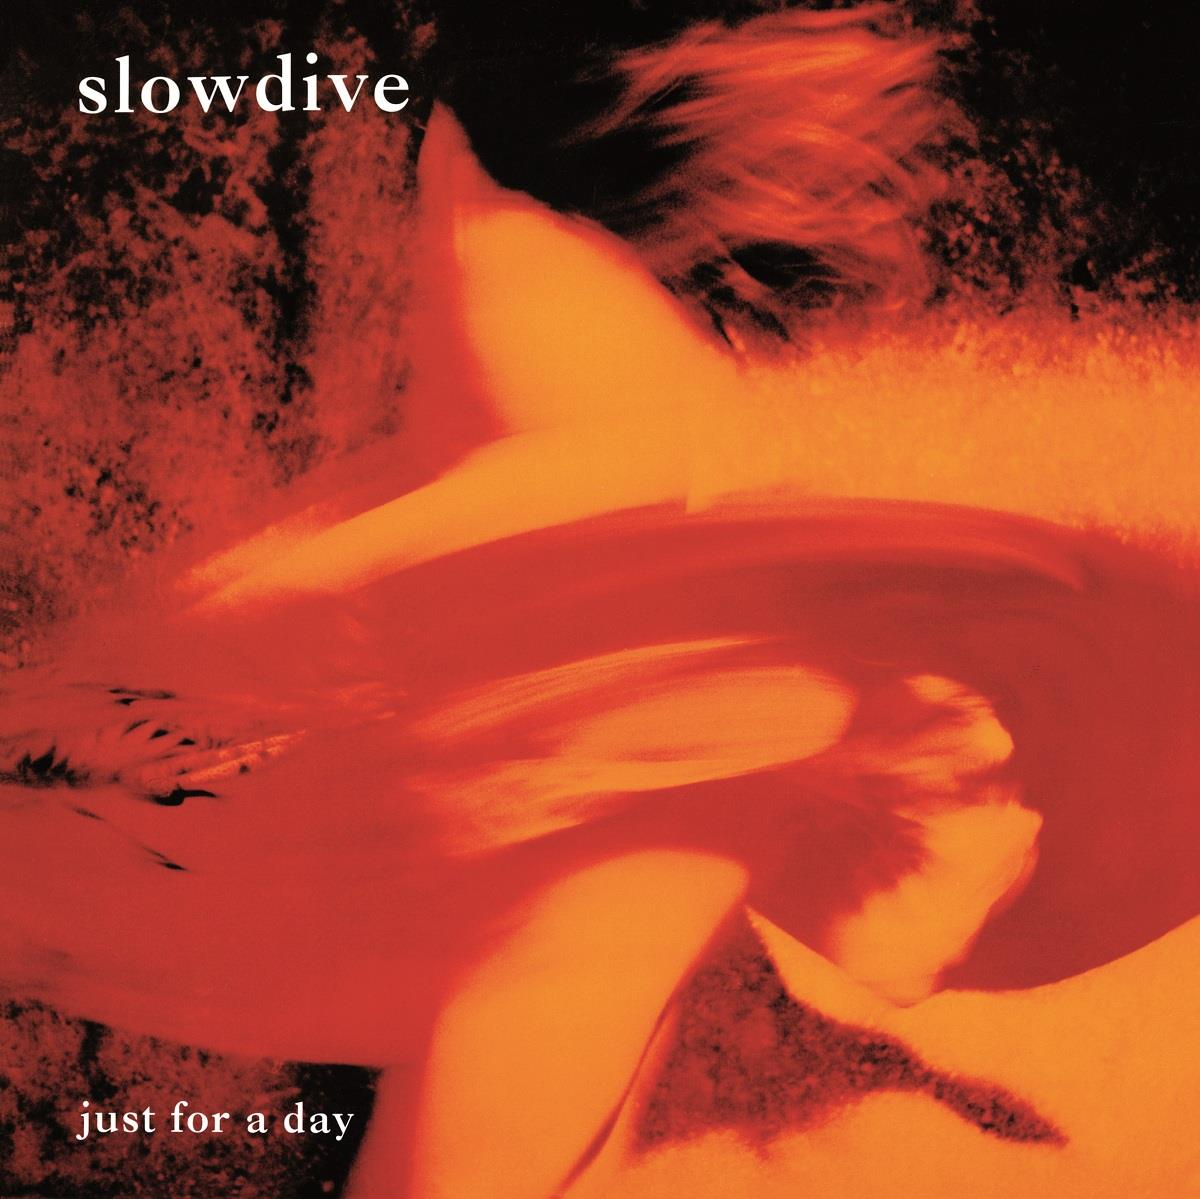 Slowdive - Just For A Day [LTD LP] (Coloured Vinyl)